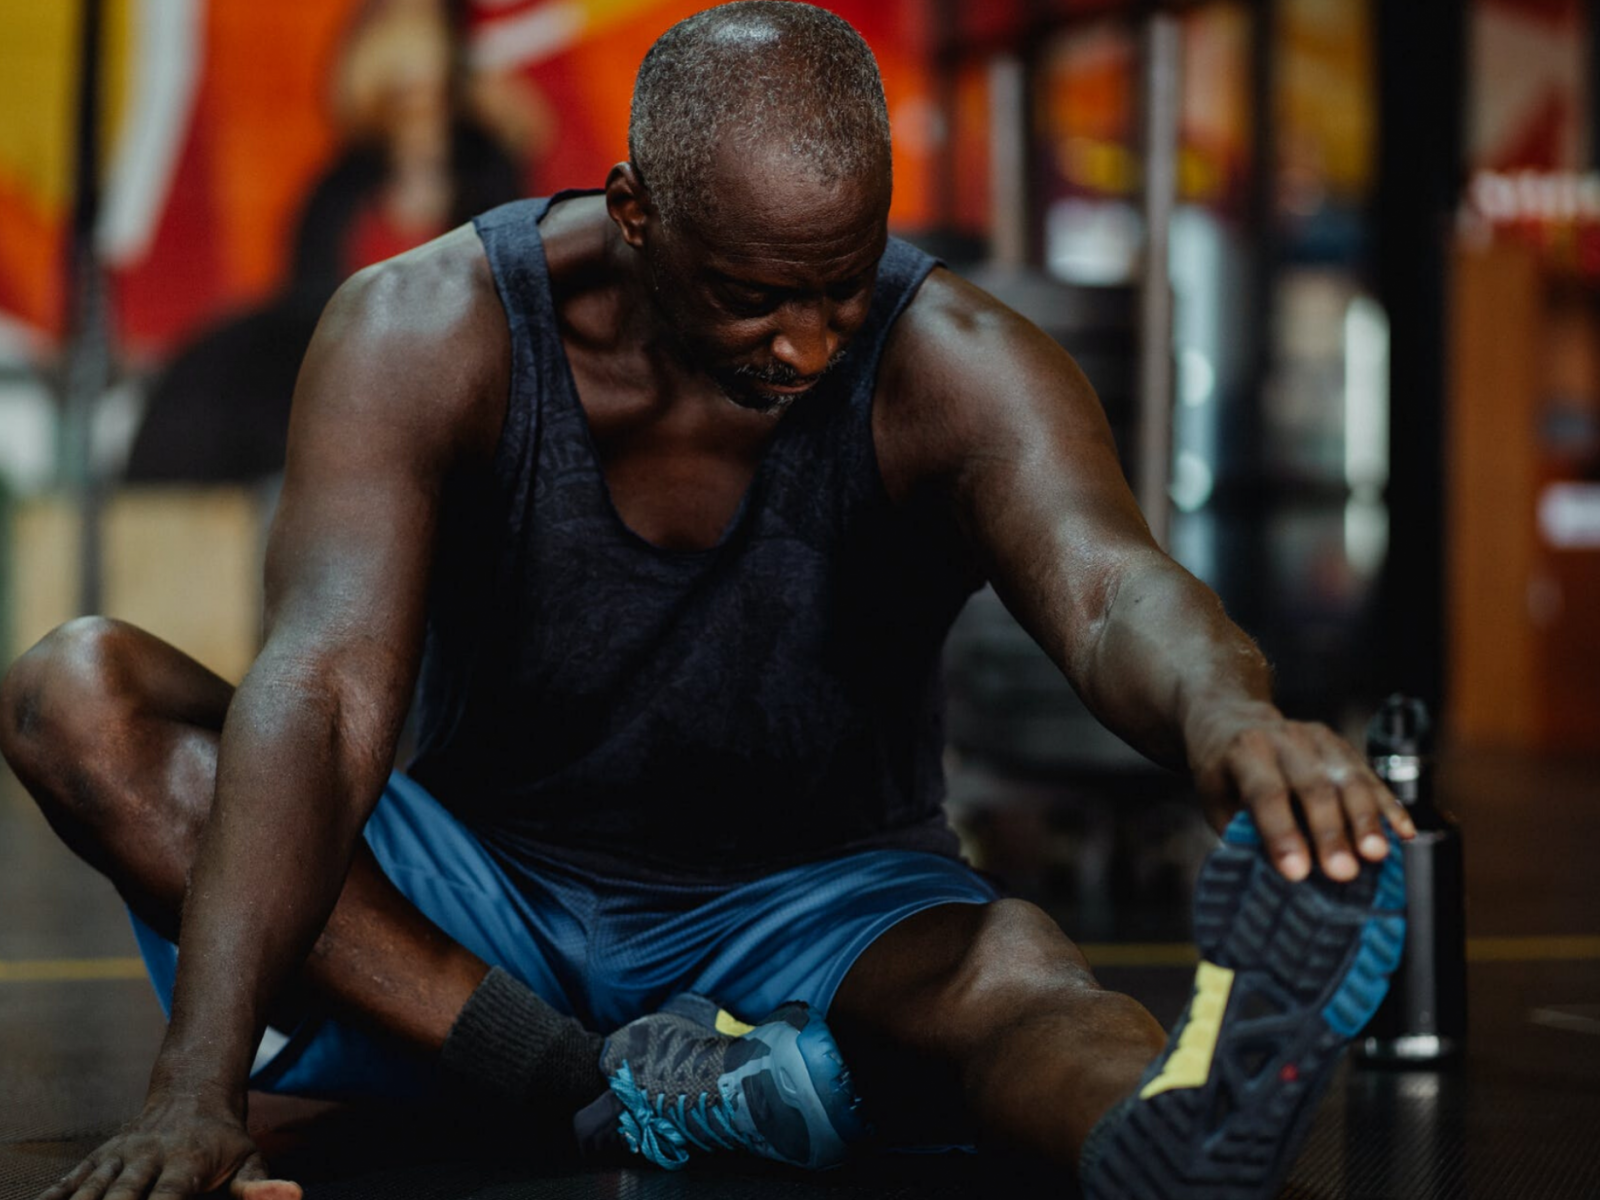 3 Seated Leg Exercise For Seniors With No Machines